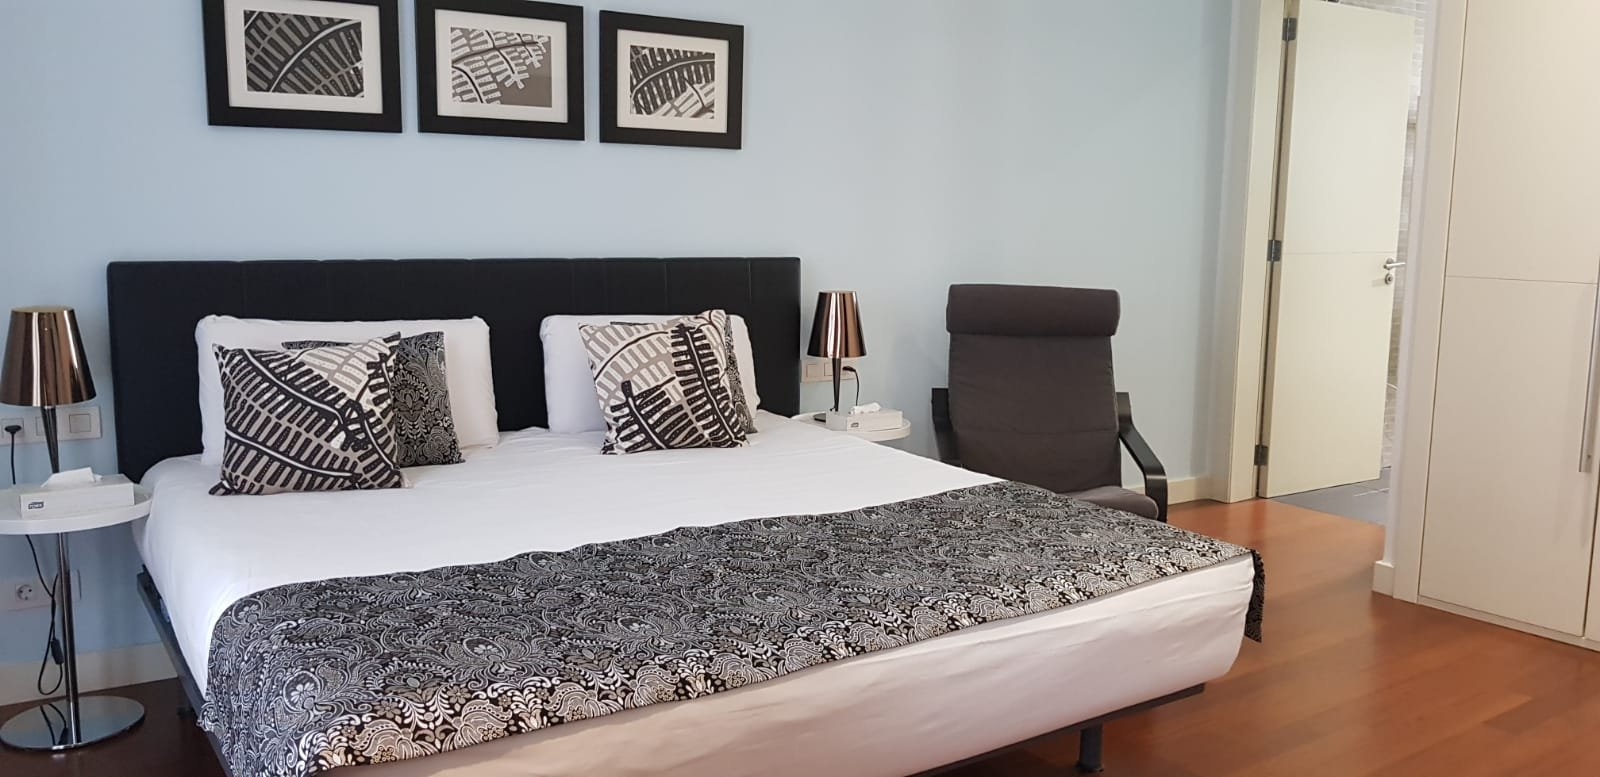 Ons appartement in Barcelona